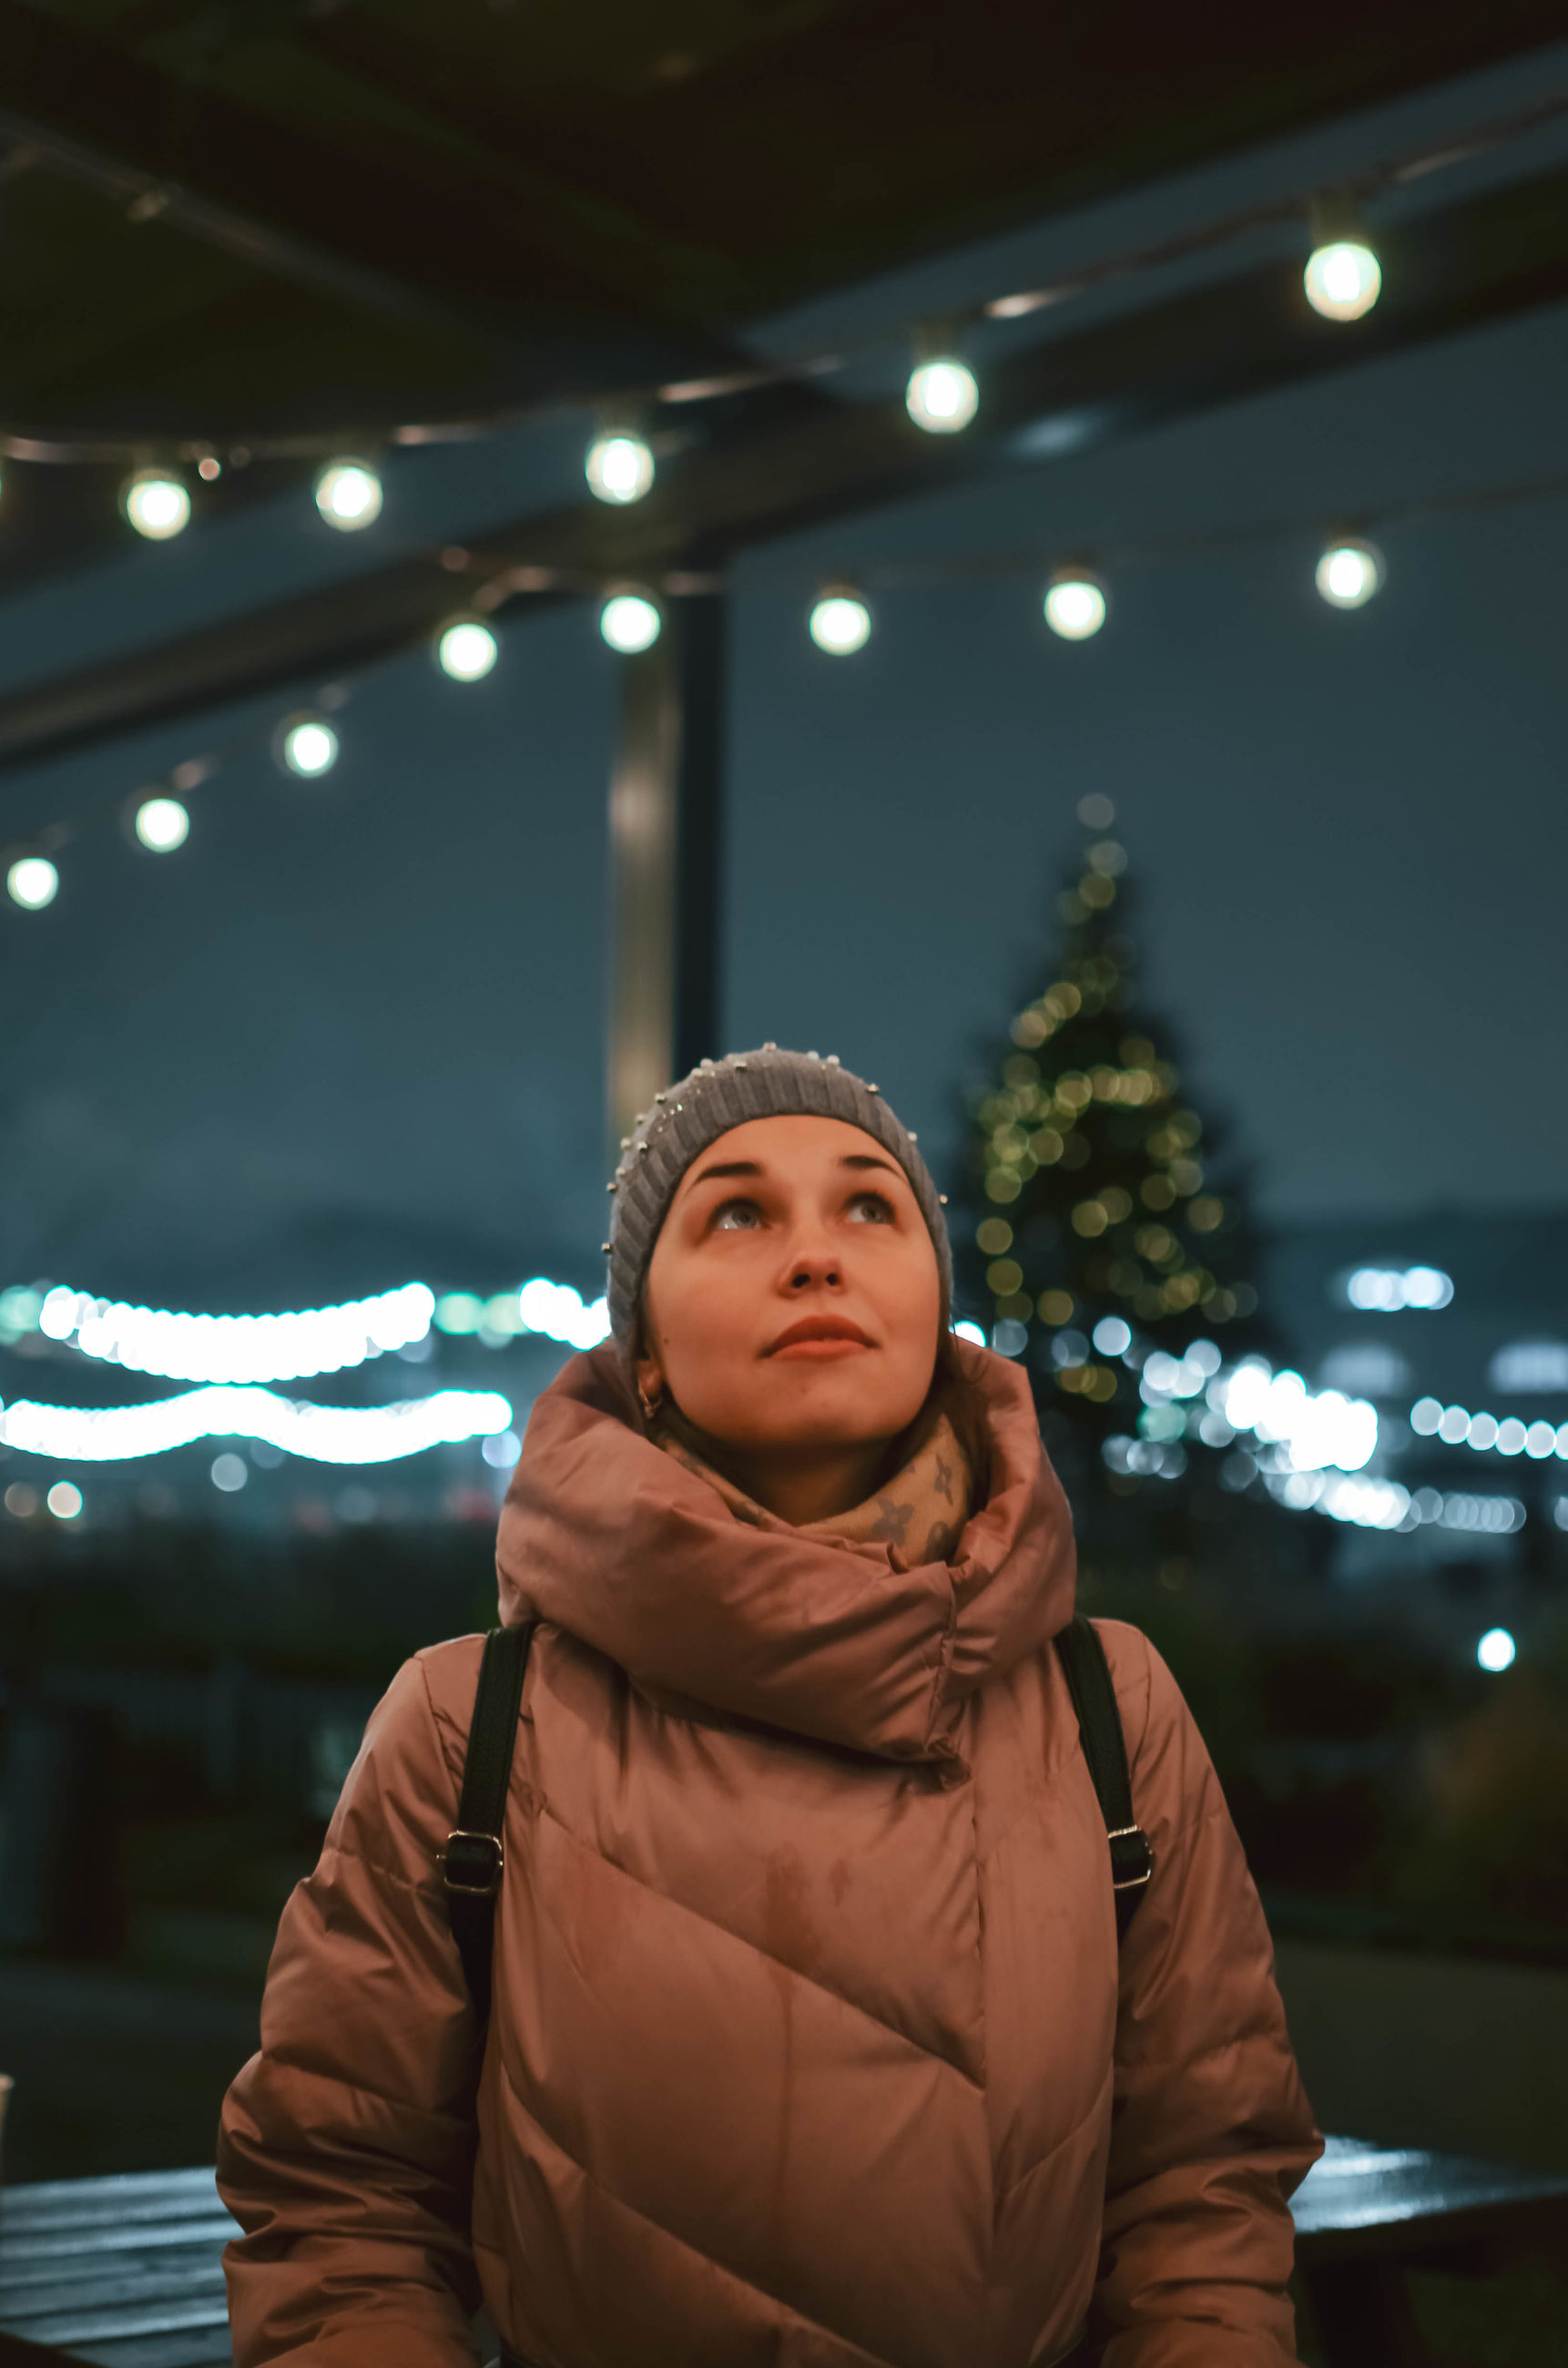 illuminated, front view, one person, young adult, clothing, waist up, real people, standing, indoors, night, lighting equipment, lifestyles, looking, warm clothing, leisure activity, winter, portrait, focus on foreground, light, hairstyle